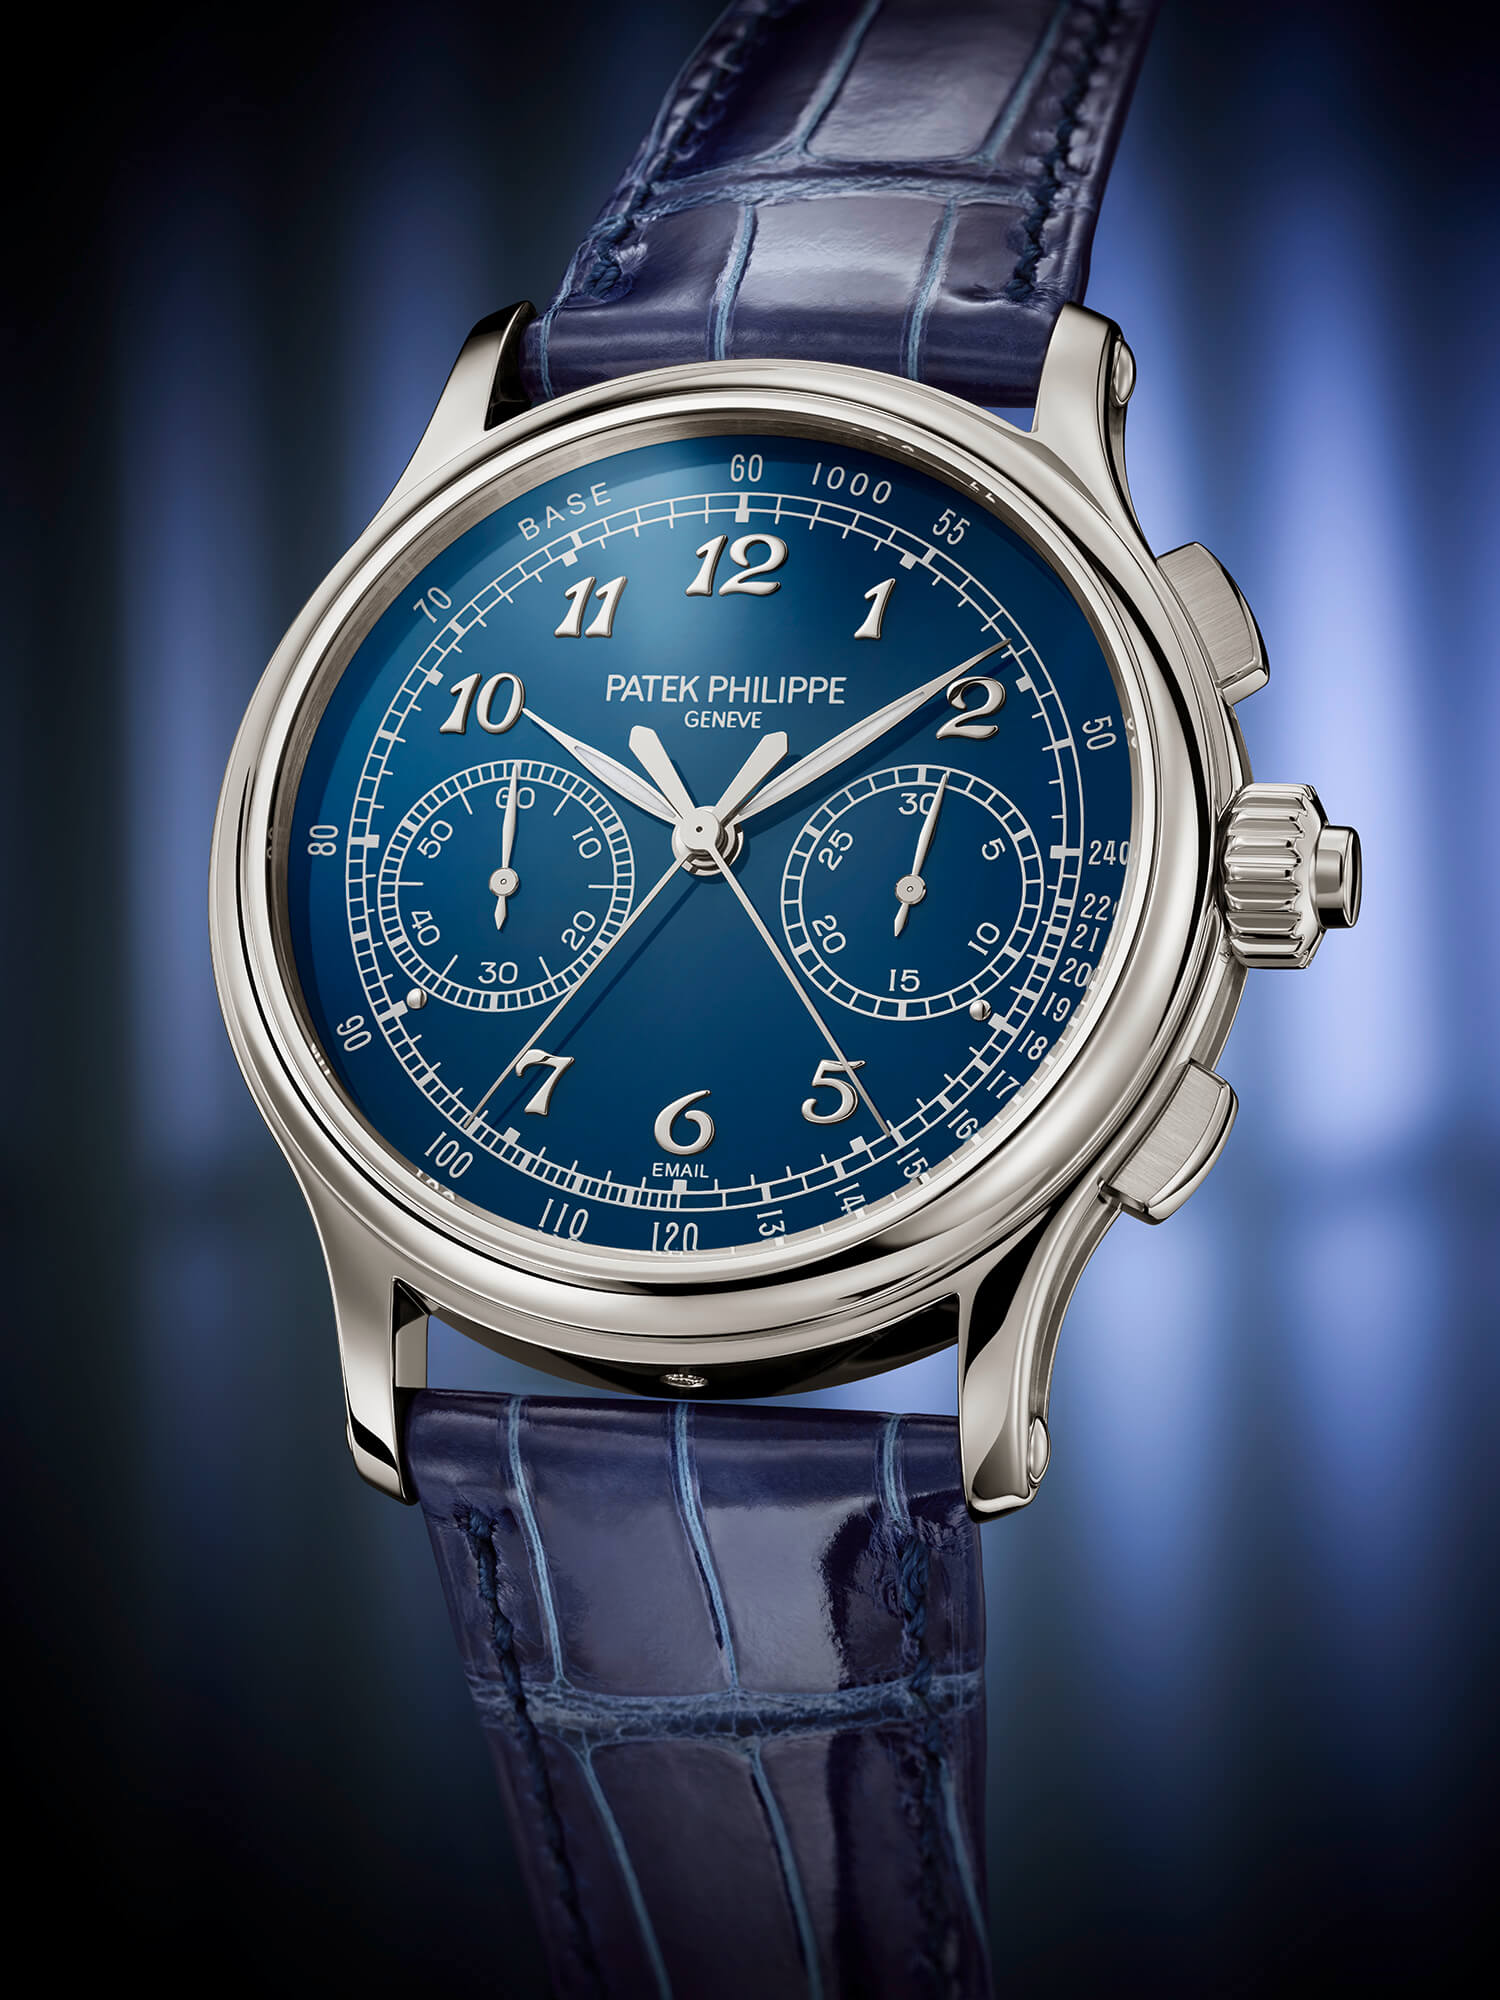 Patek Philippe Ref. 5370P-011 Split-Seconds Chronograph